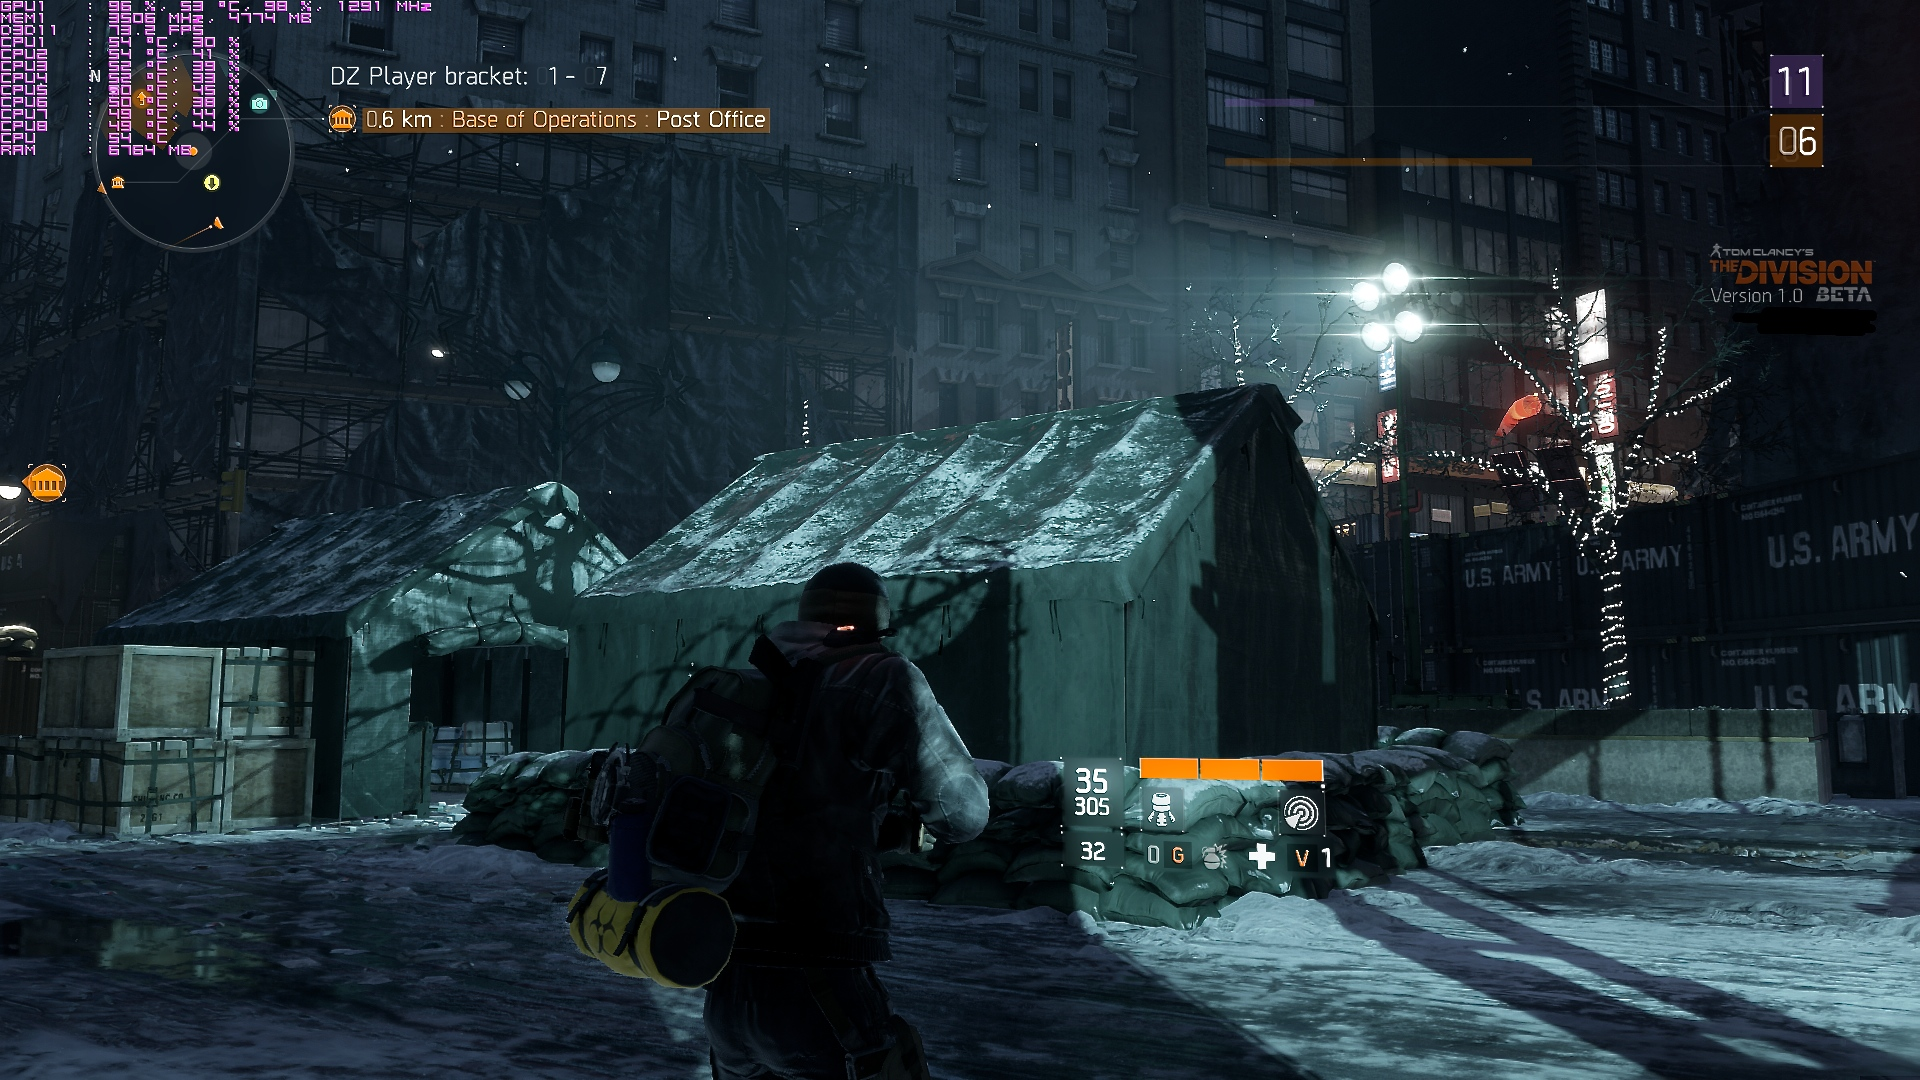 new the division pc screenshots maxed out 1080p hbao. Black Bedroom Furniture Sets. Home Design Ideas